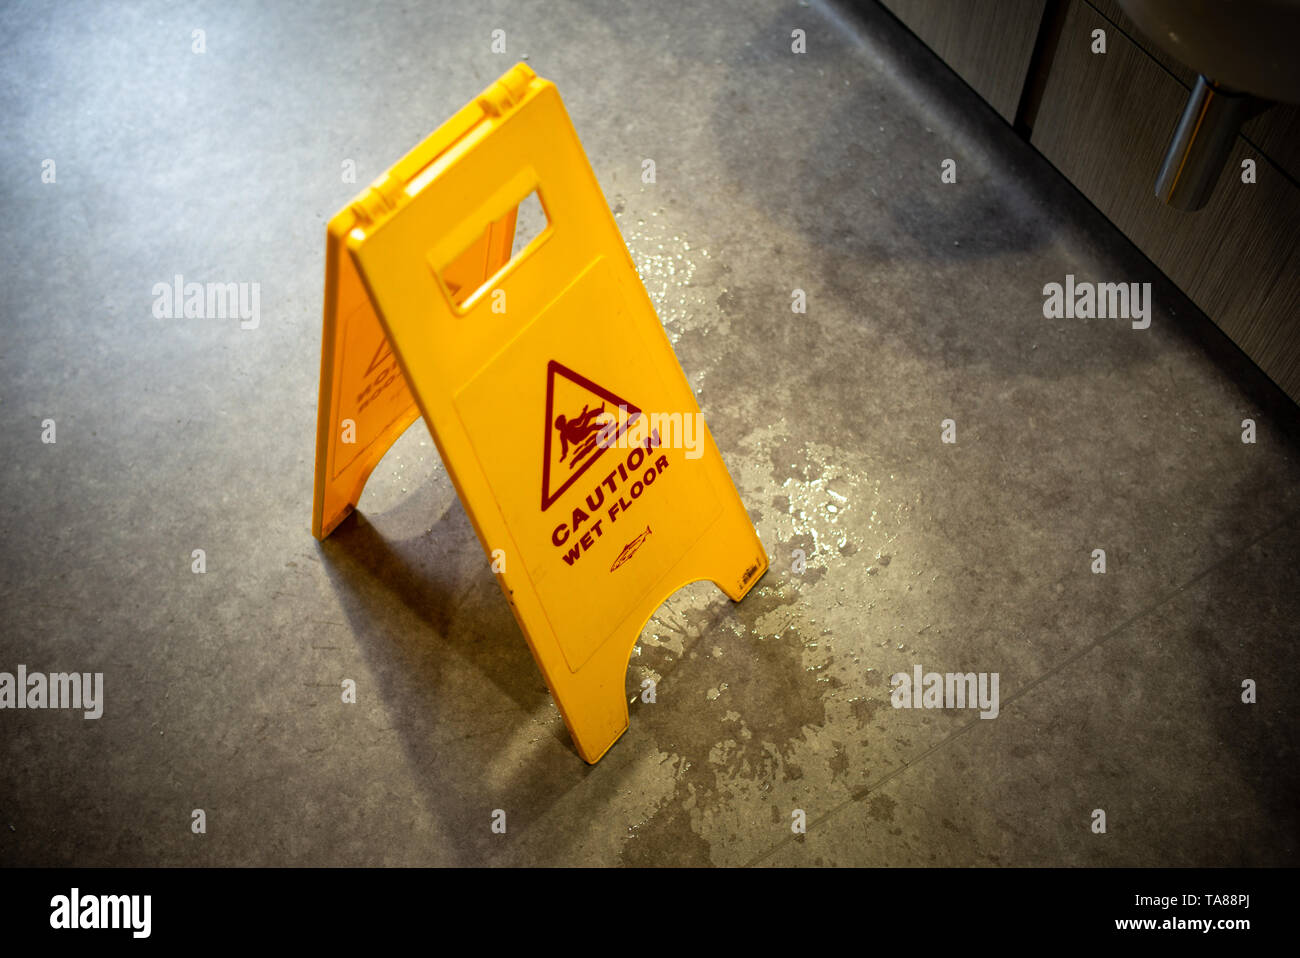 Caution wet floor safety stand up yellow warning sign in a toilet. - Stock Image